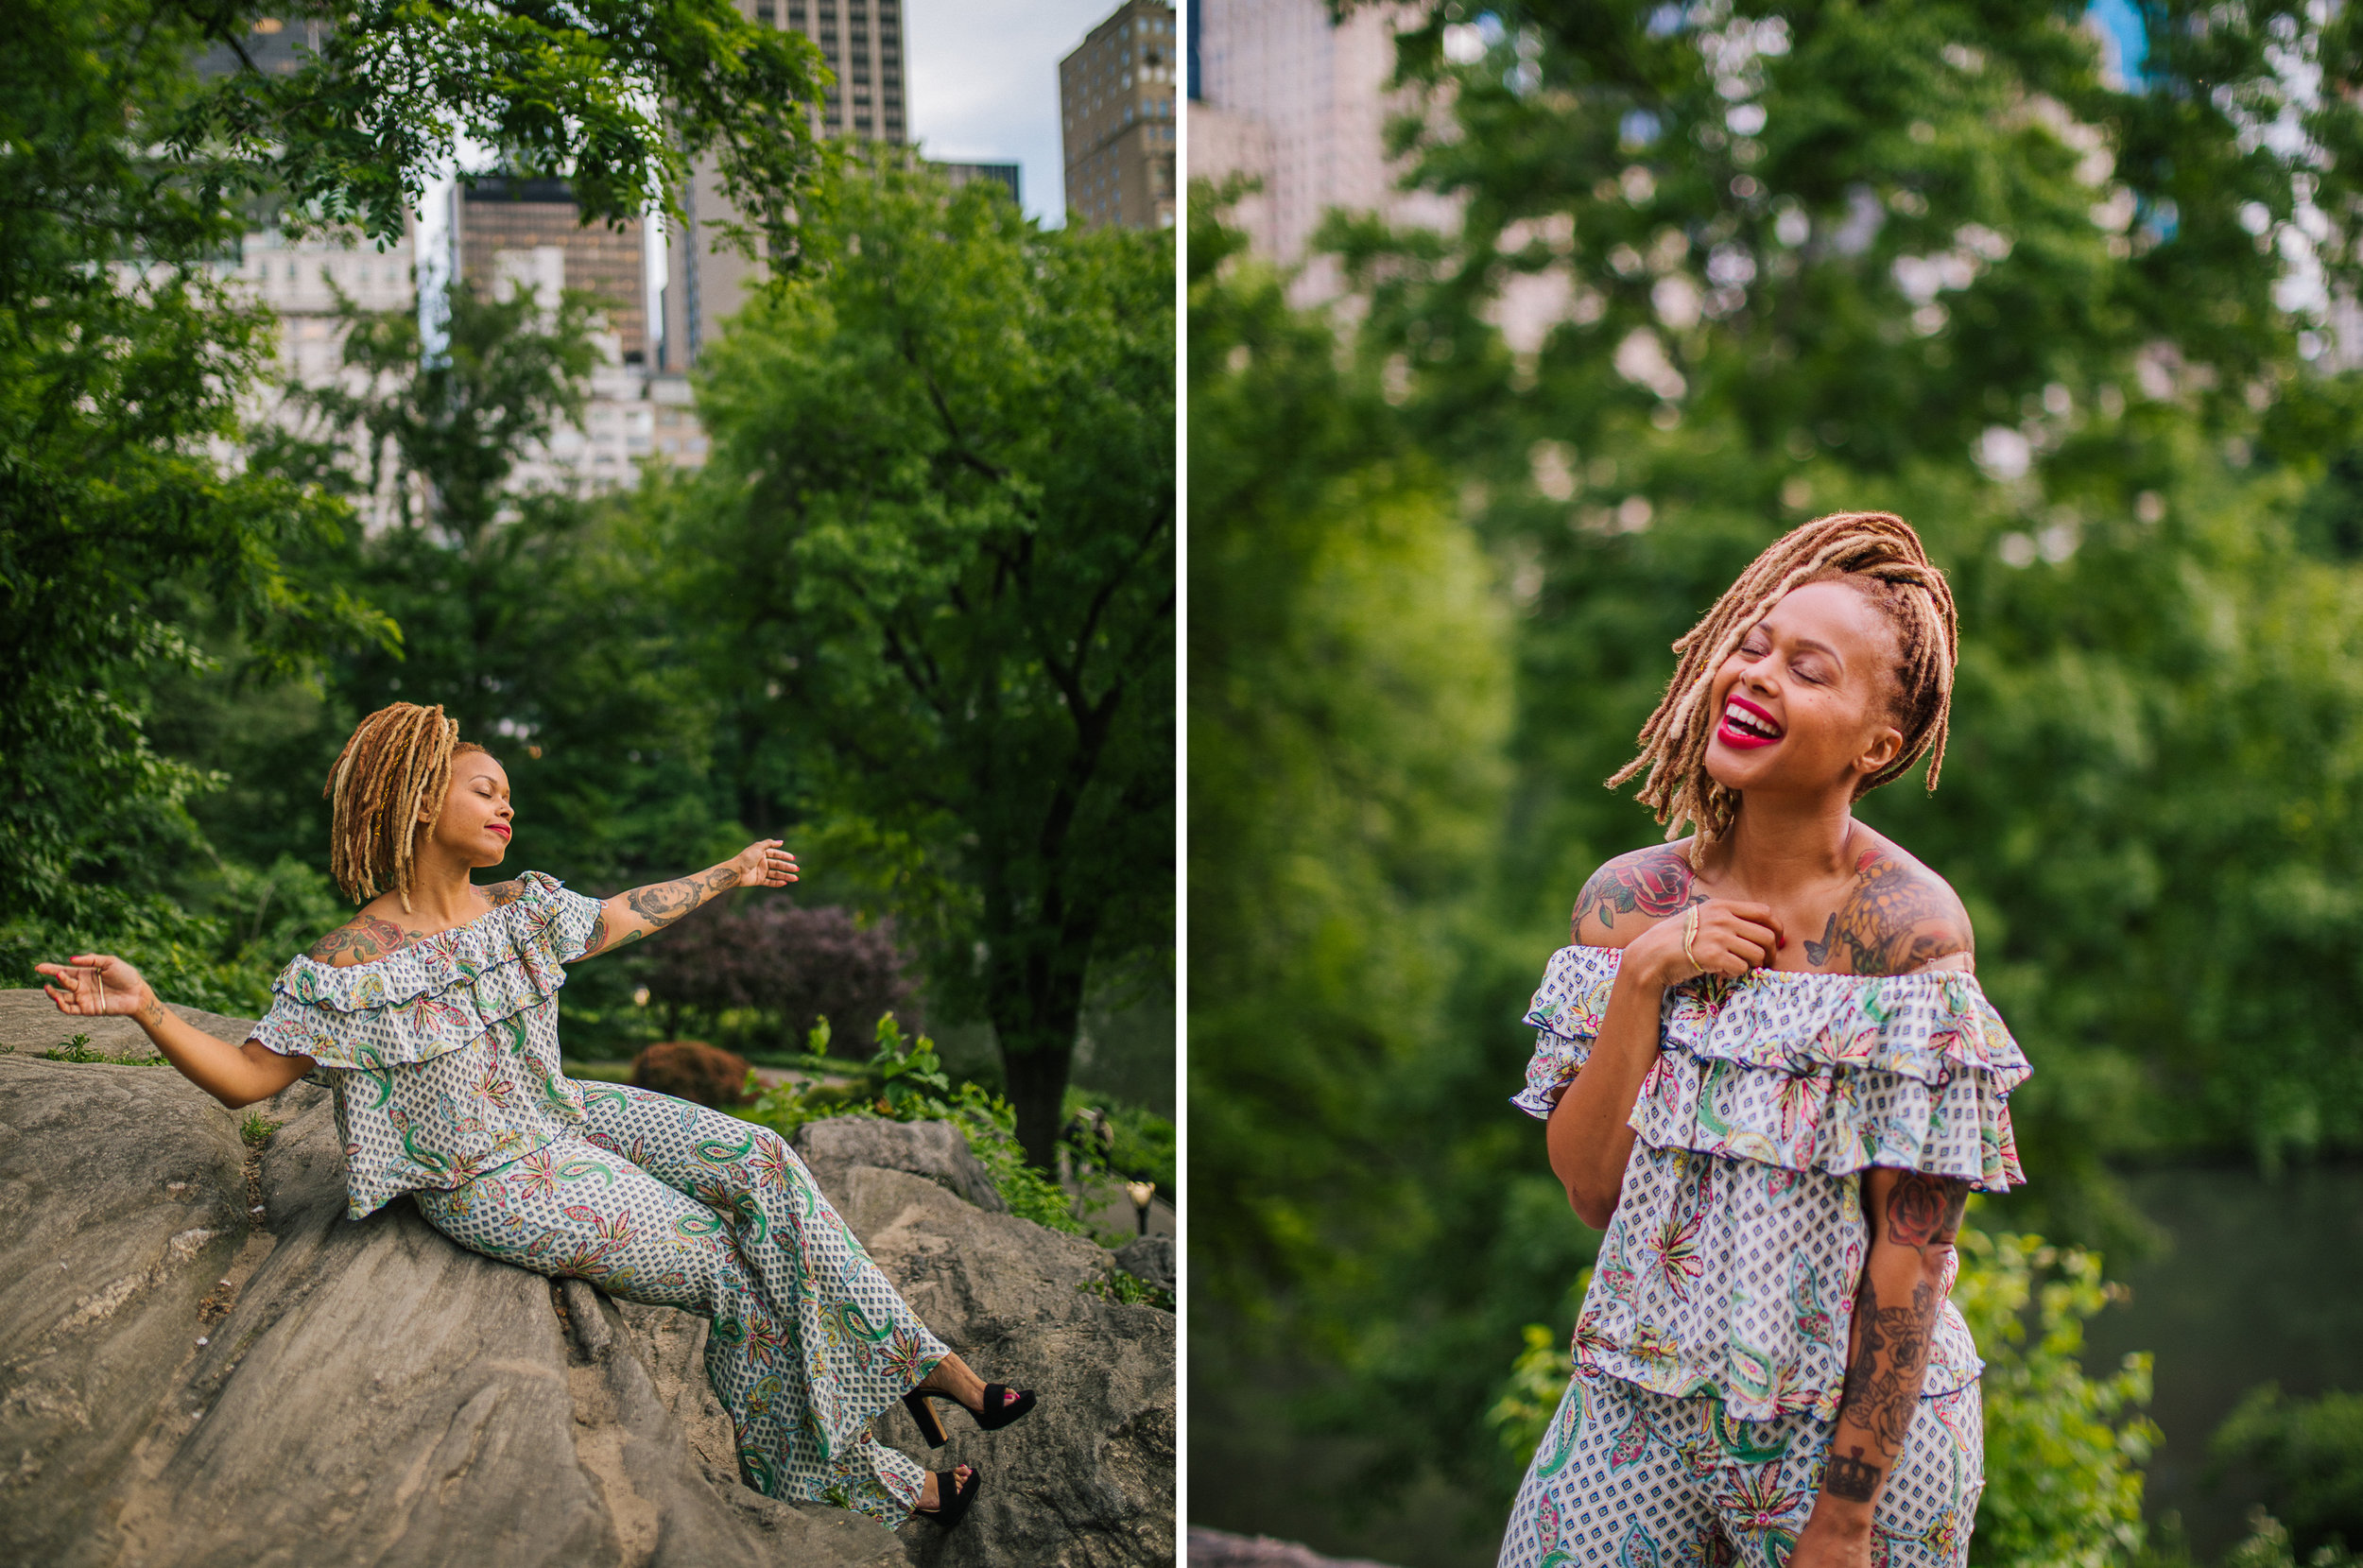 central_park_nyc_portraits.jpg